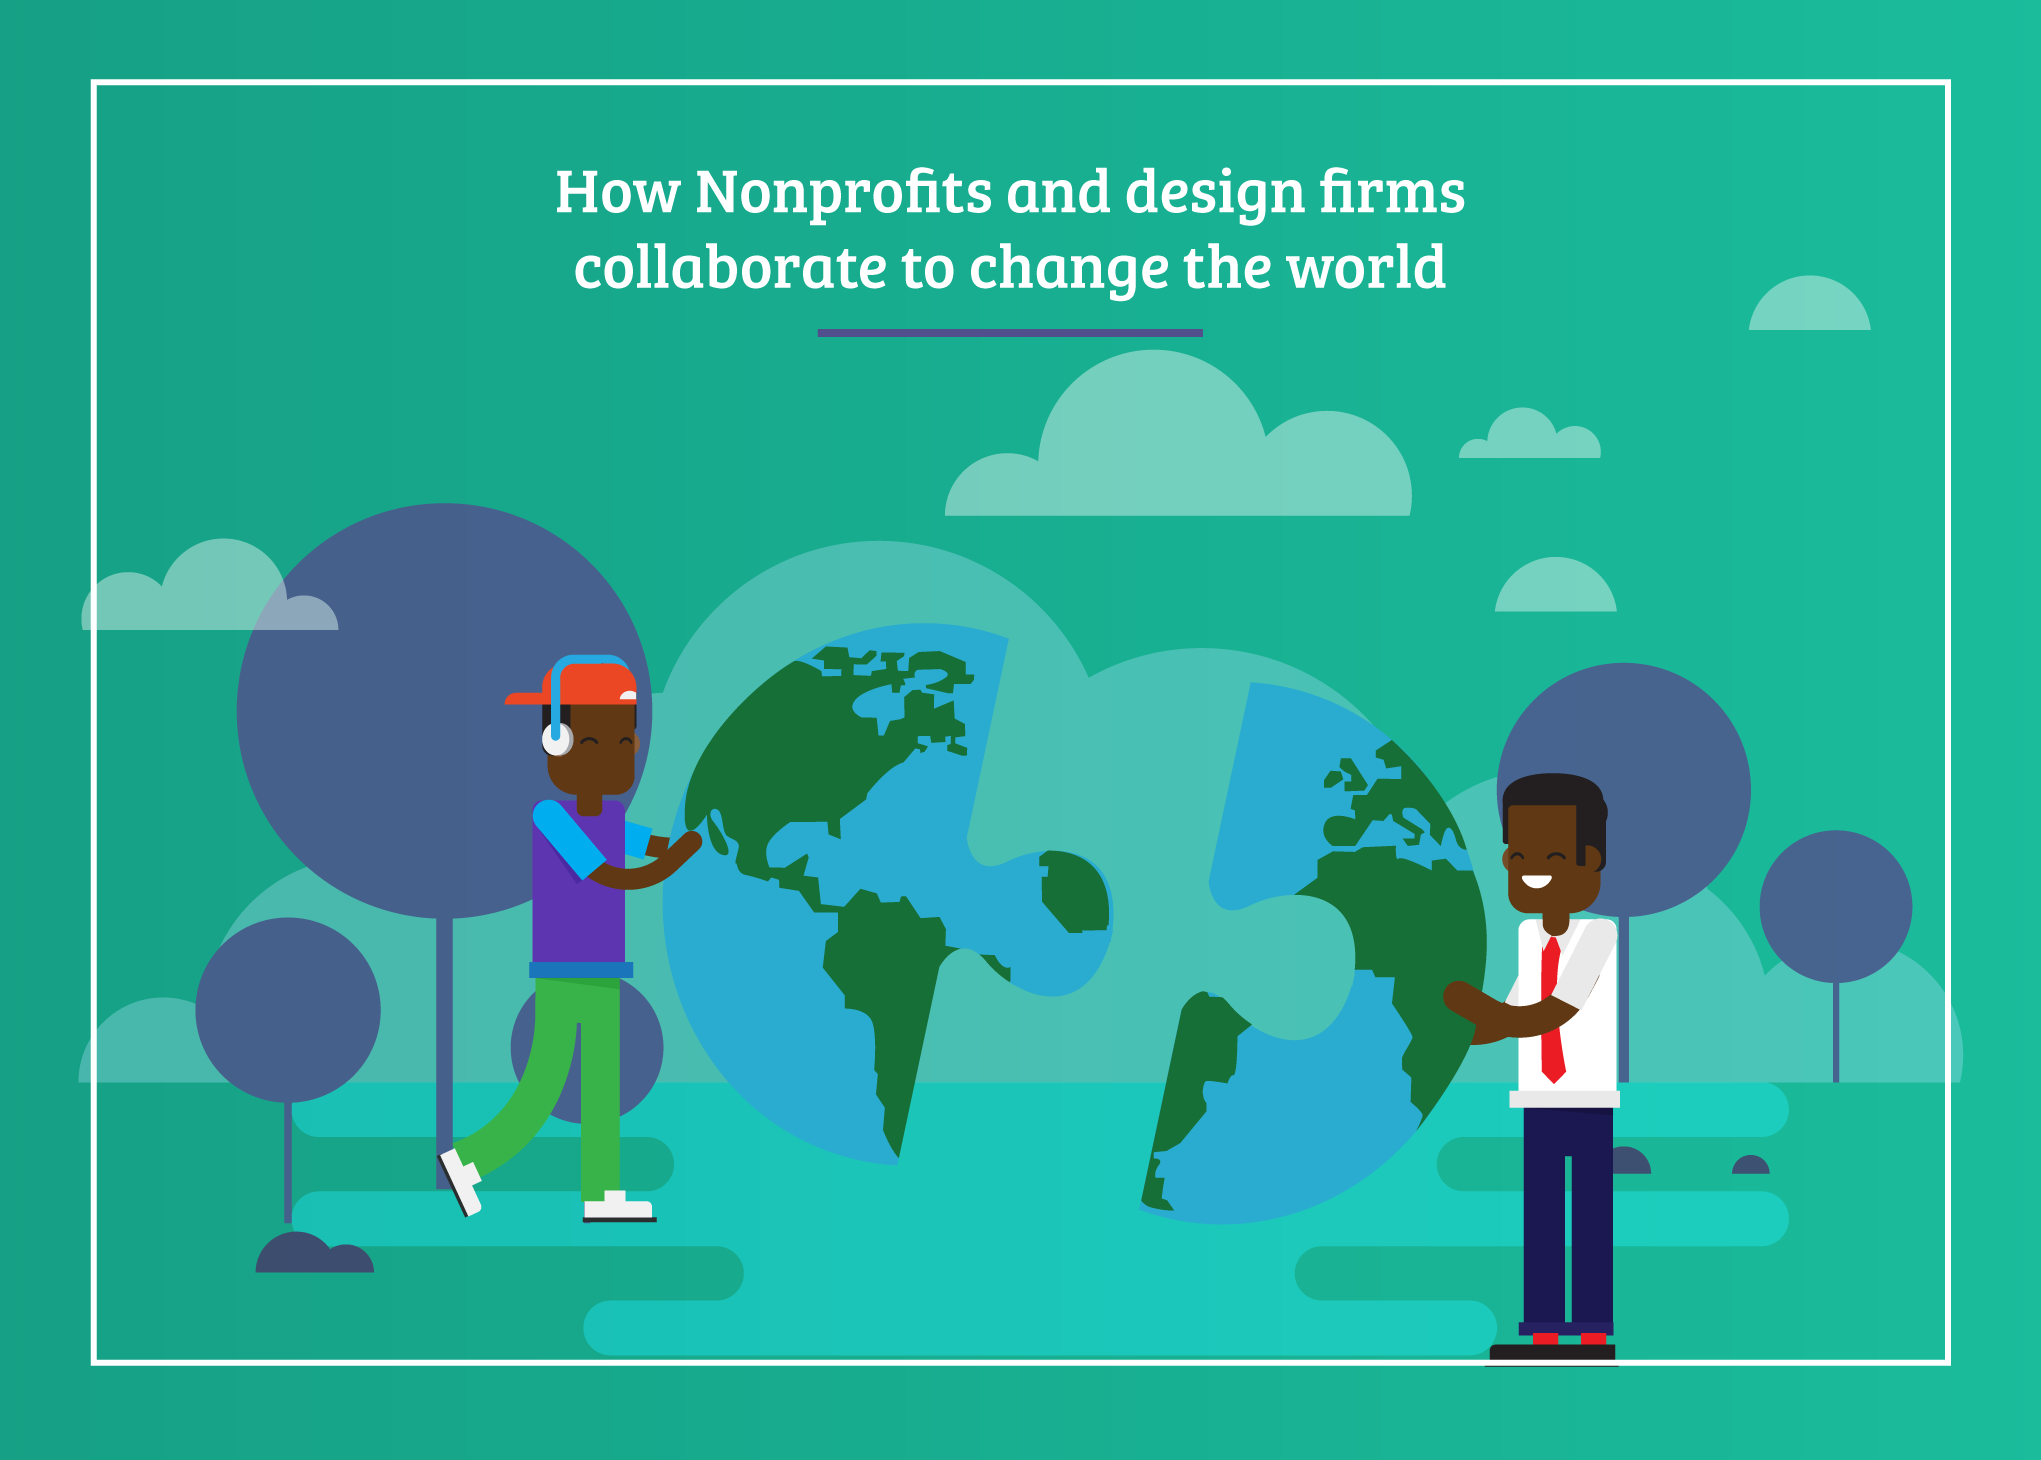 How Nonprofits & Design Firms Collaborate to Change the World.